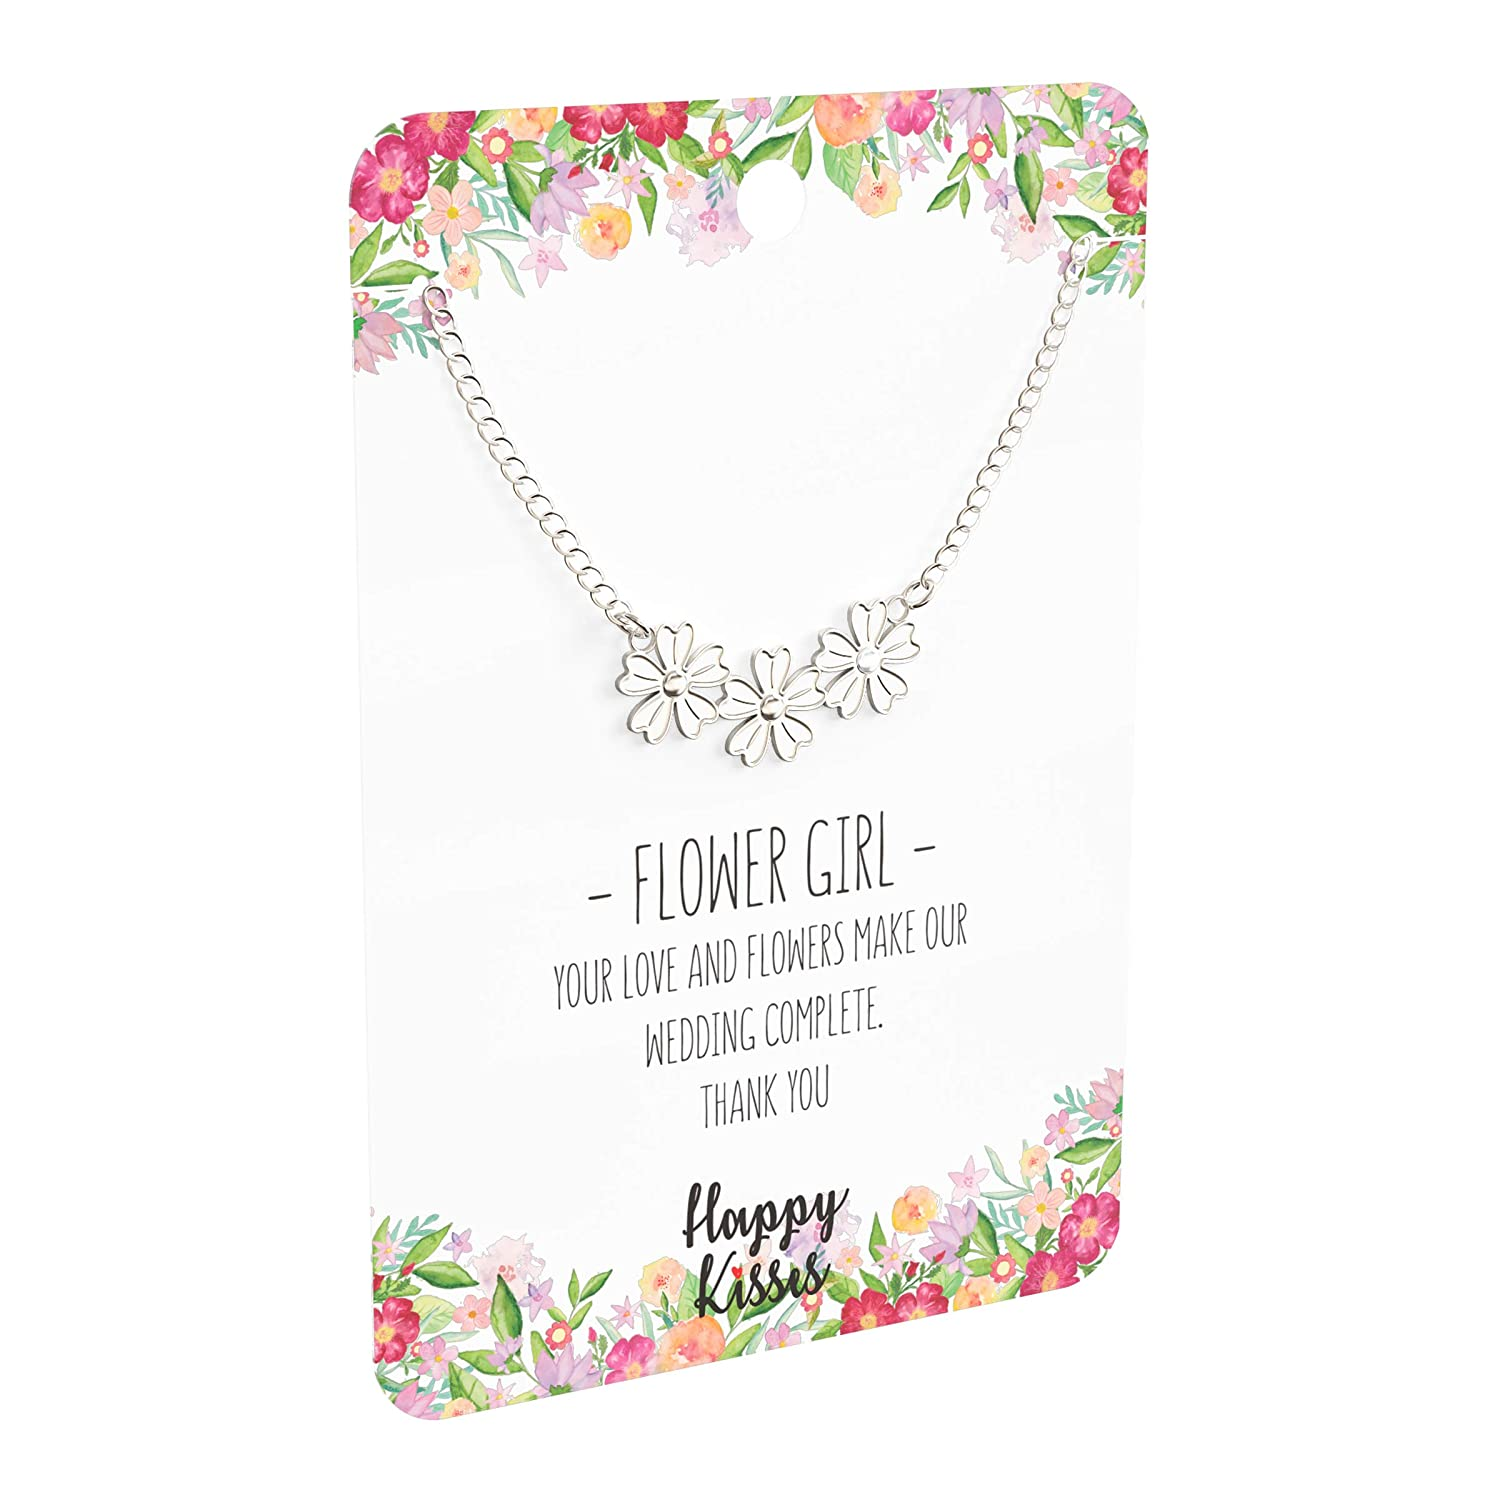 ba674141da7 Amazon.com: Happy Kisses Flower Girl Necklace - Your Love and Flowers Make  Our Wedding Complete. Thank You - Message Card (Silver): Jewelry